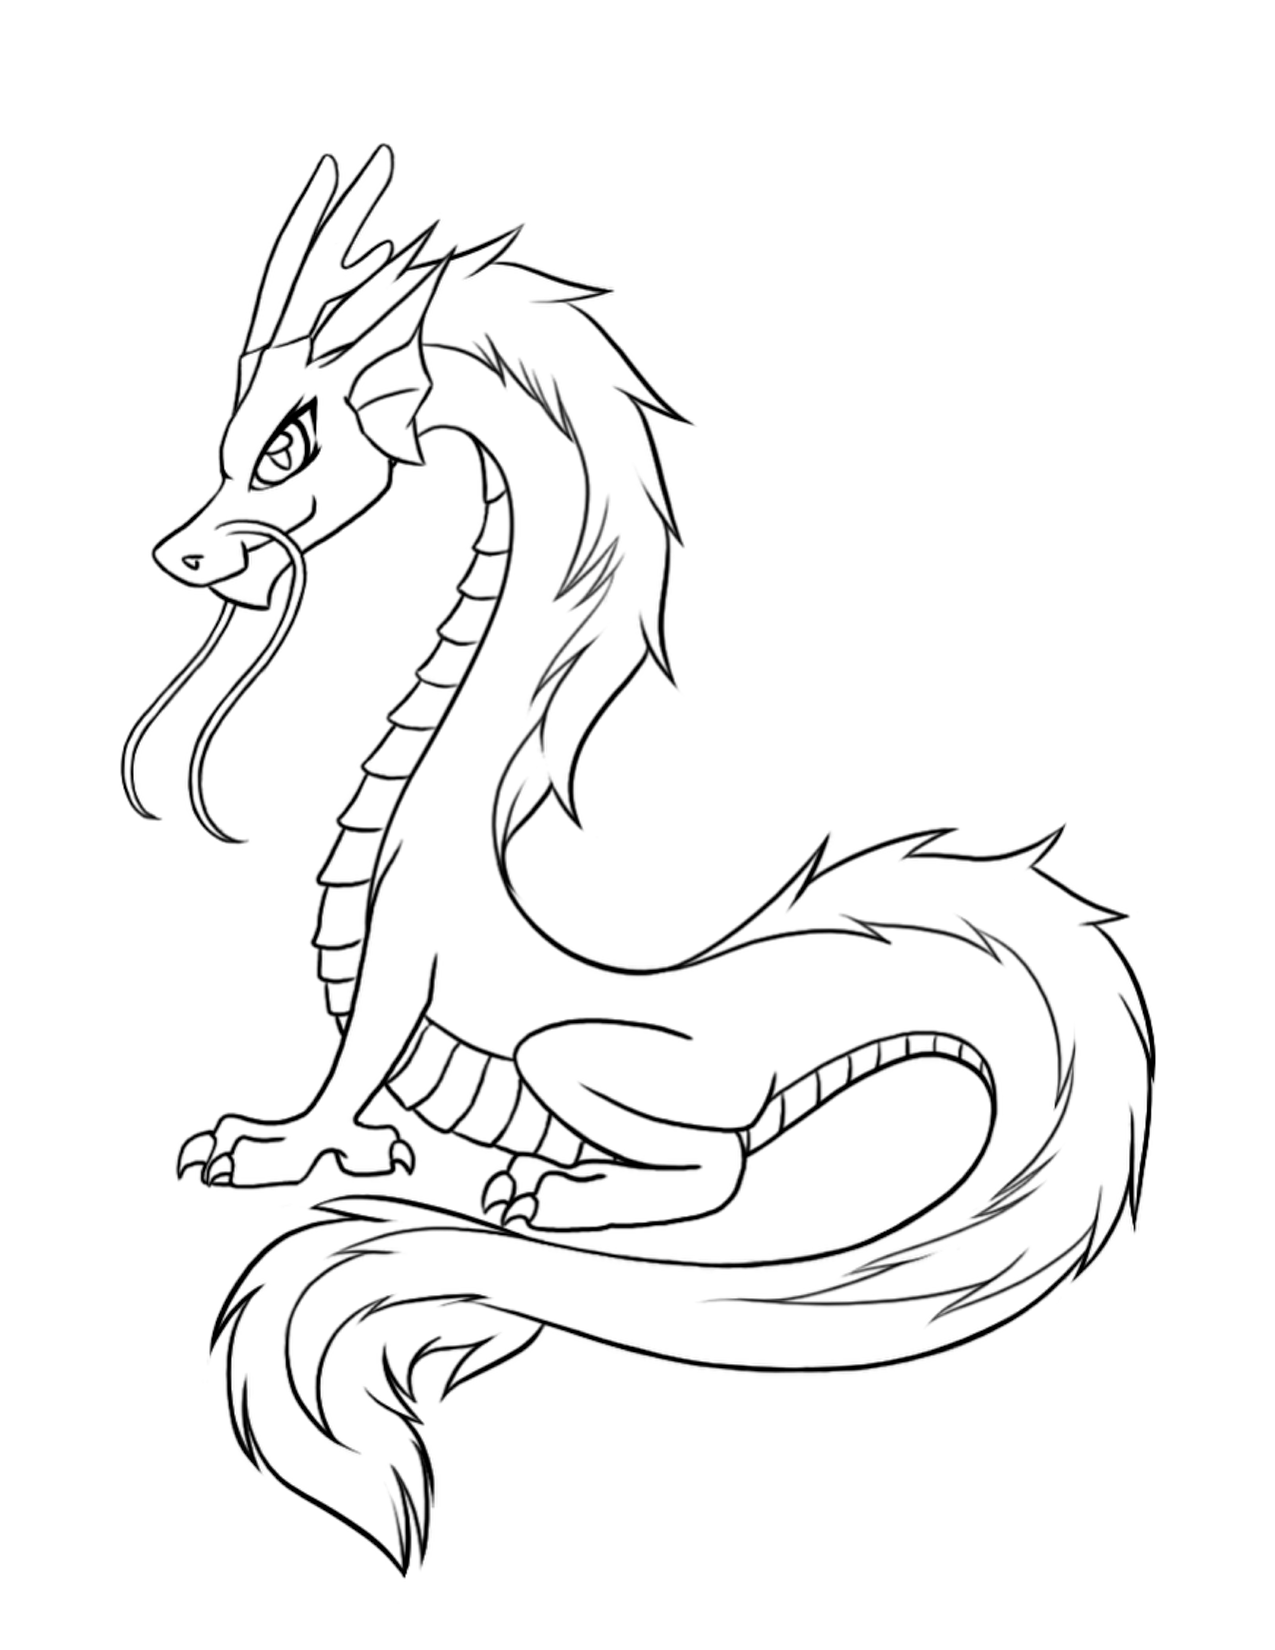 Free Printable Dragon Coloring Pages For Kids | Dragon sketch ...